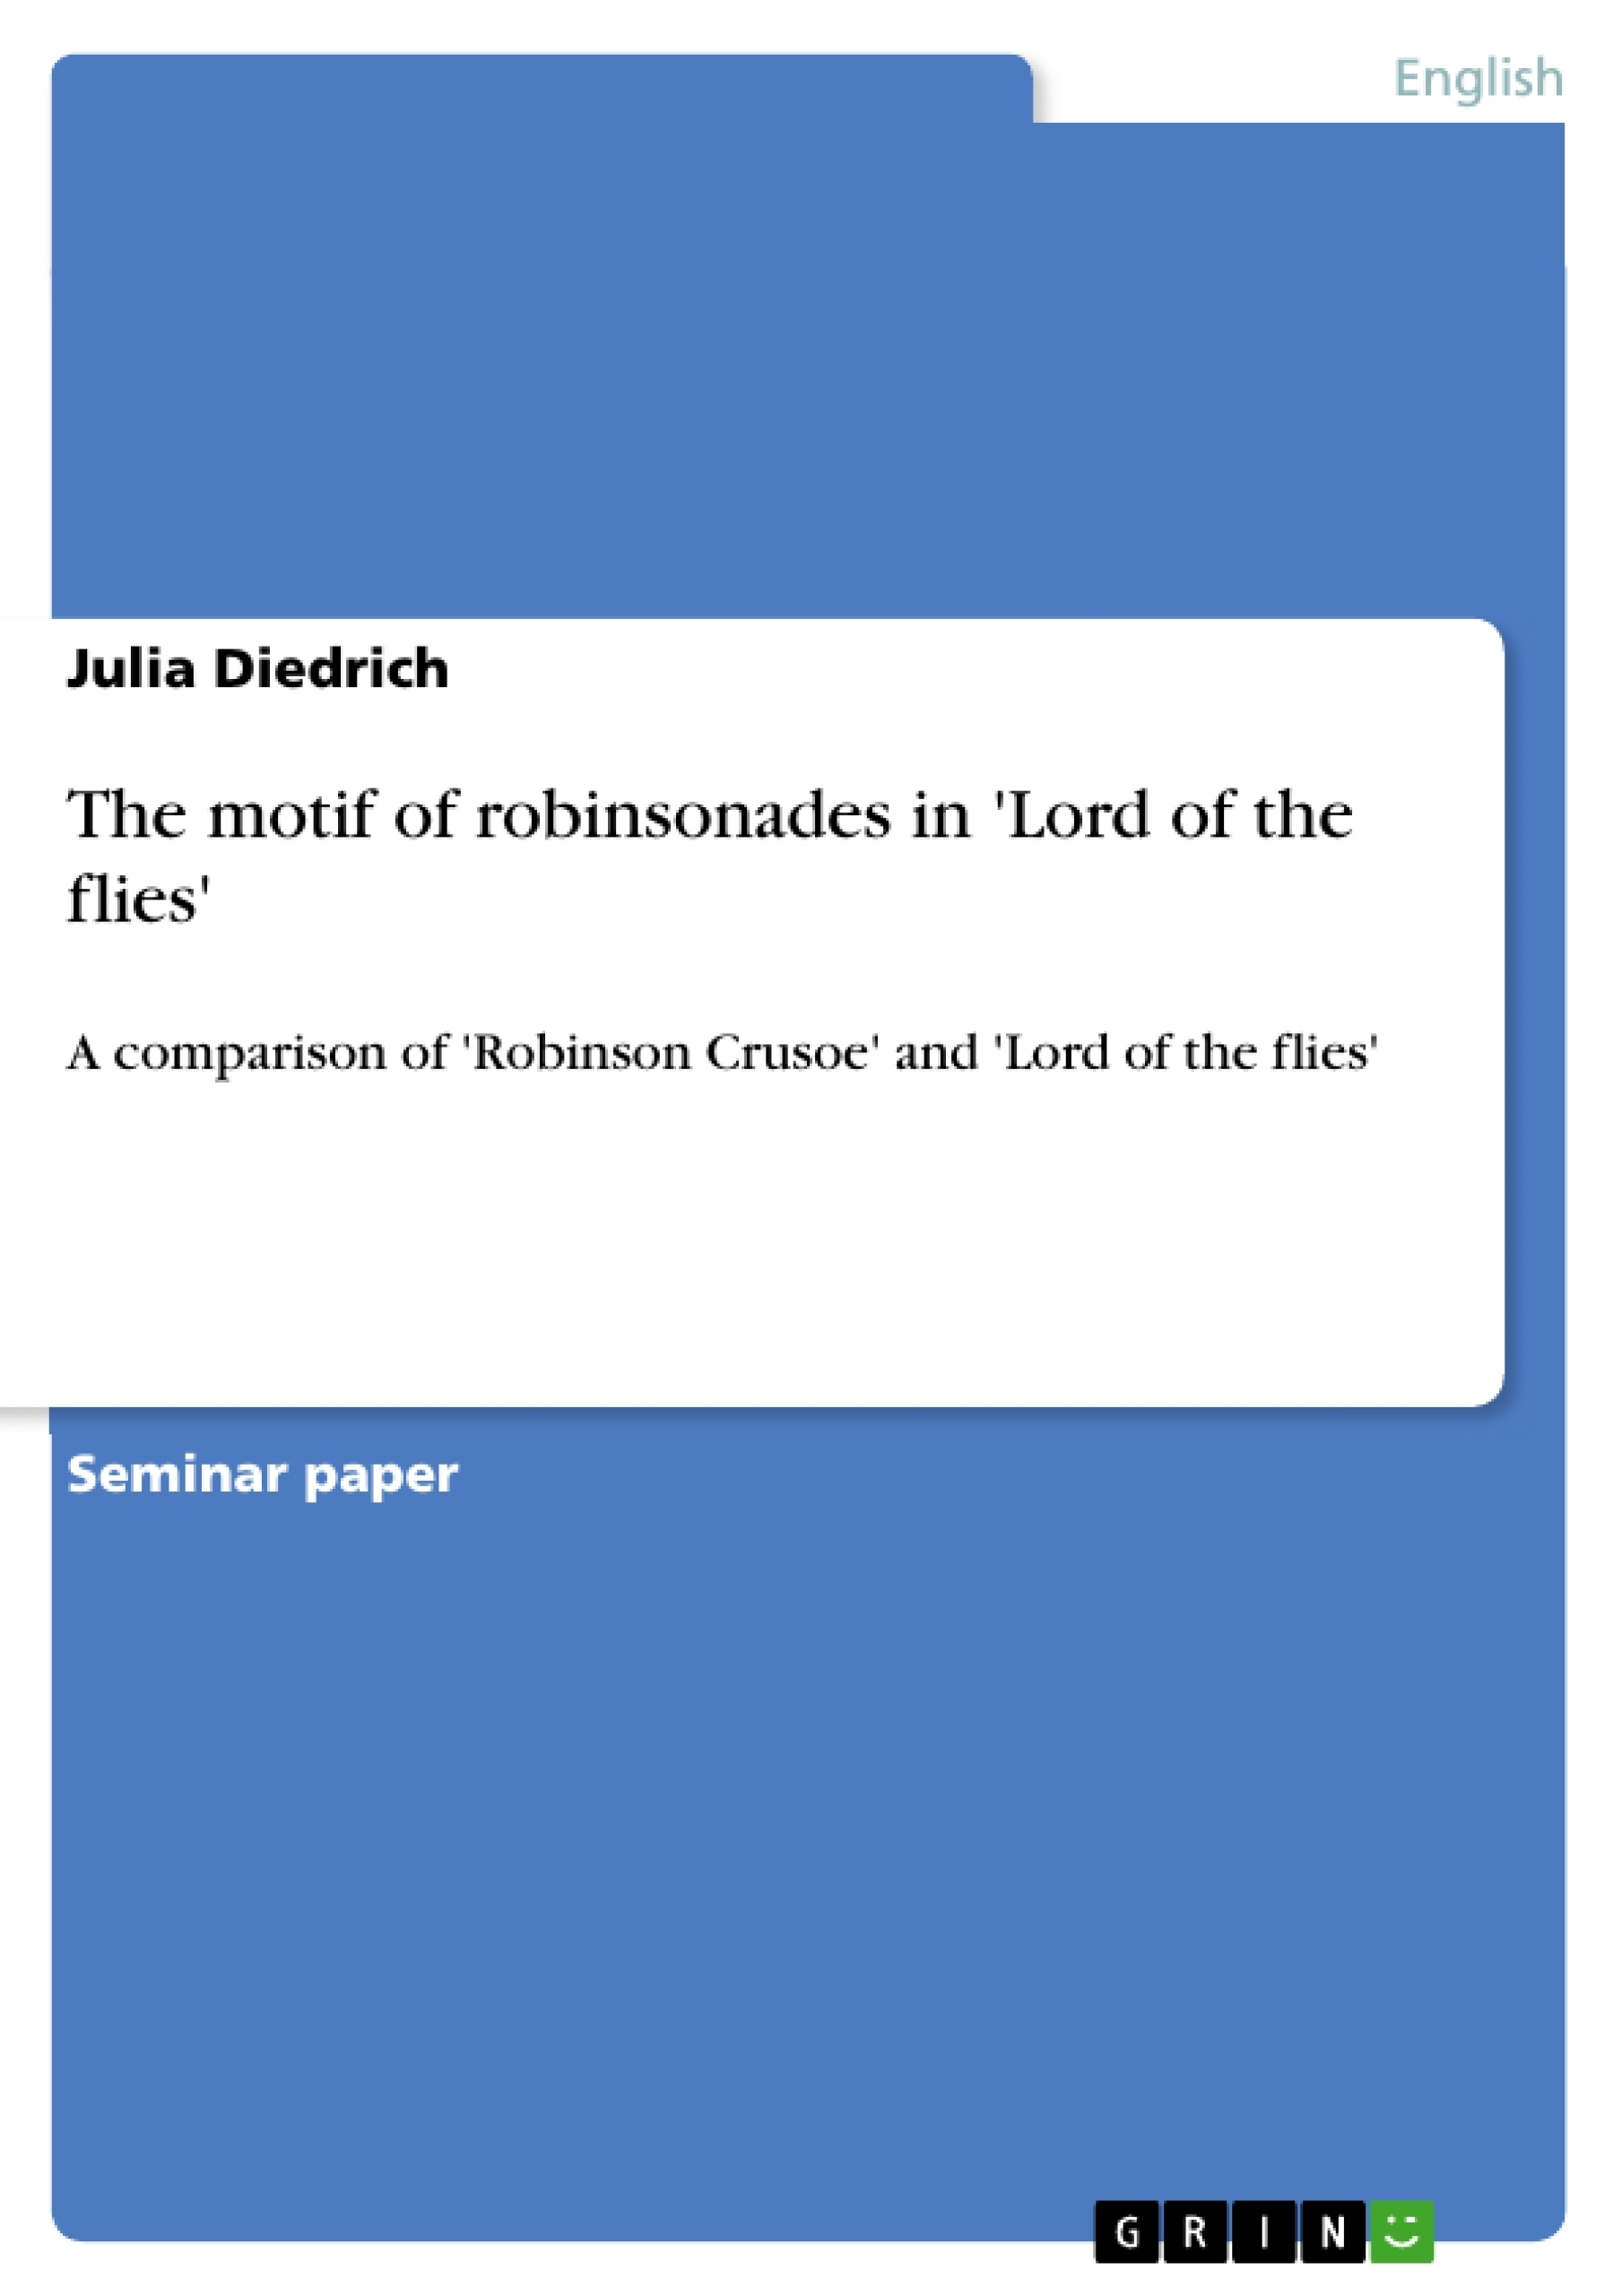 Title: The motif of robinsonades in 'Lord of the flies'